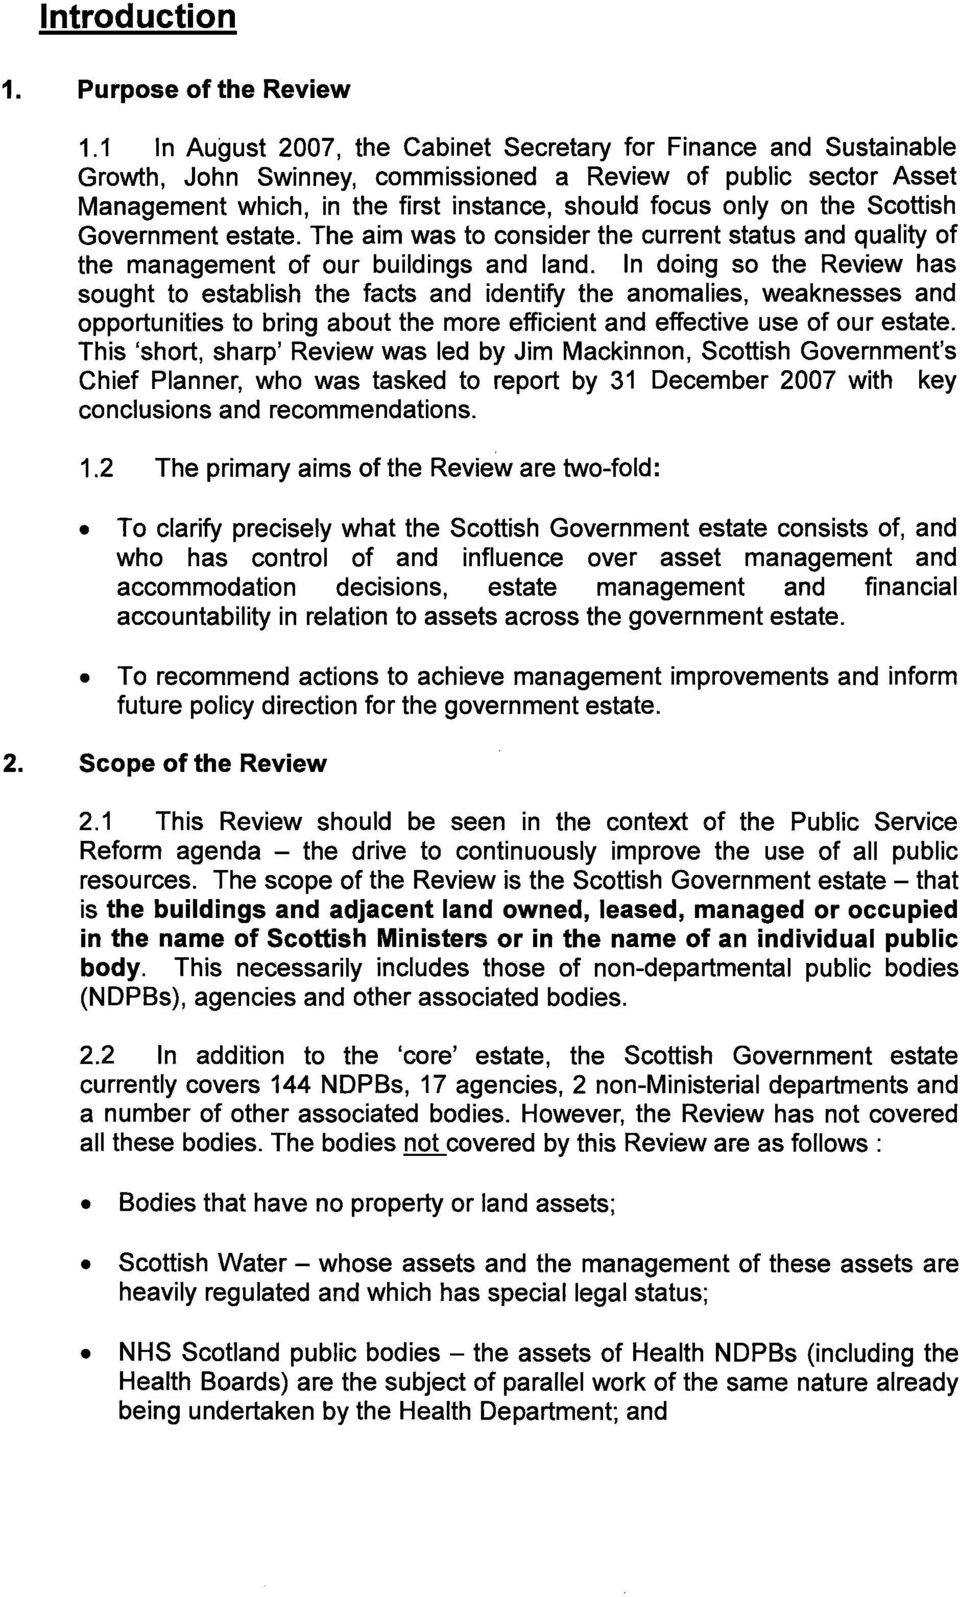 the Scottish Government estate. The aim was to consider the current status and quality of the management of our buildings and land.